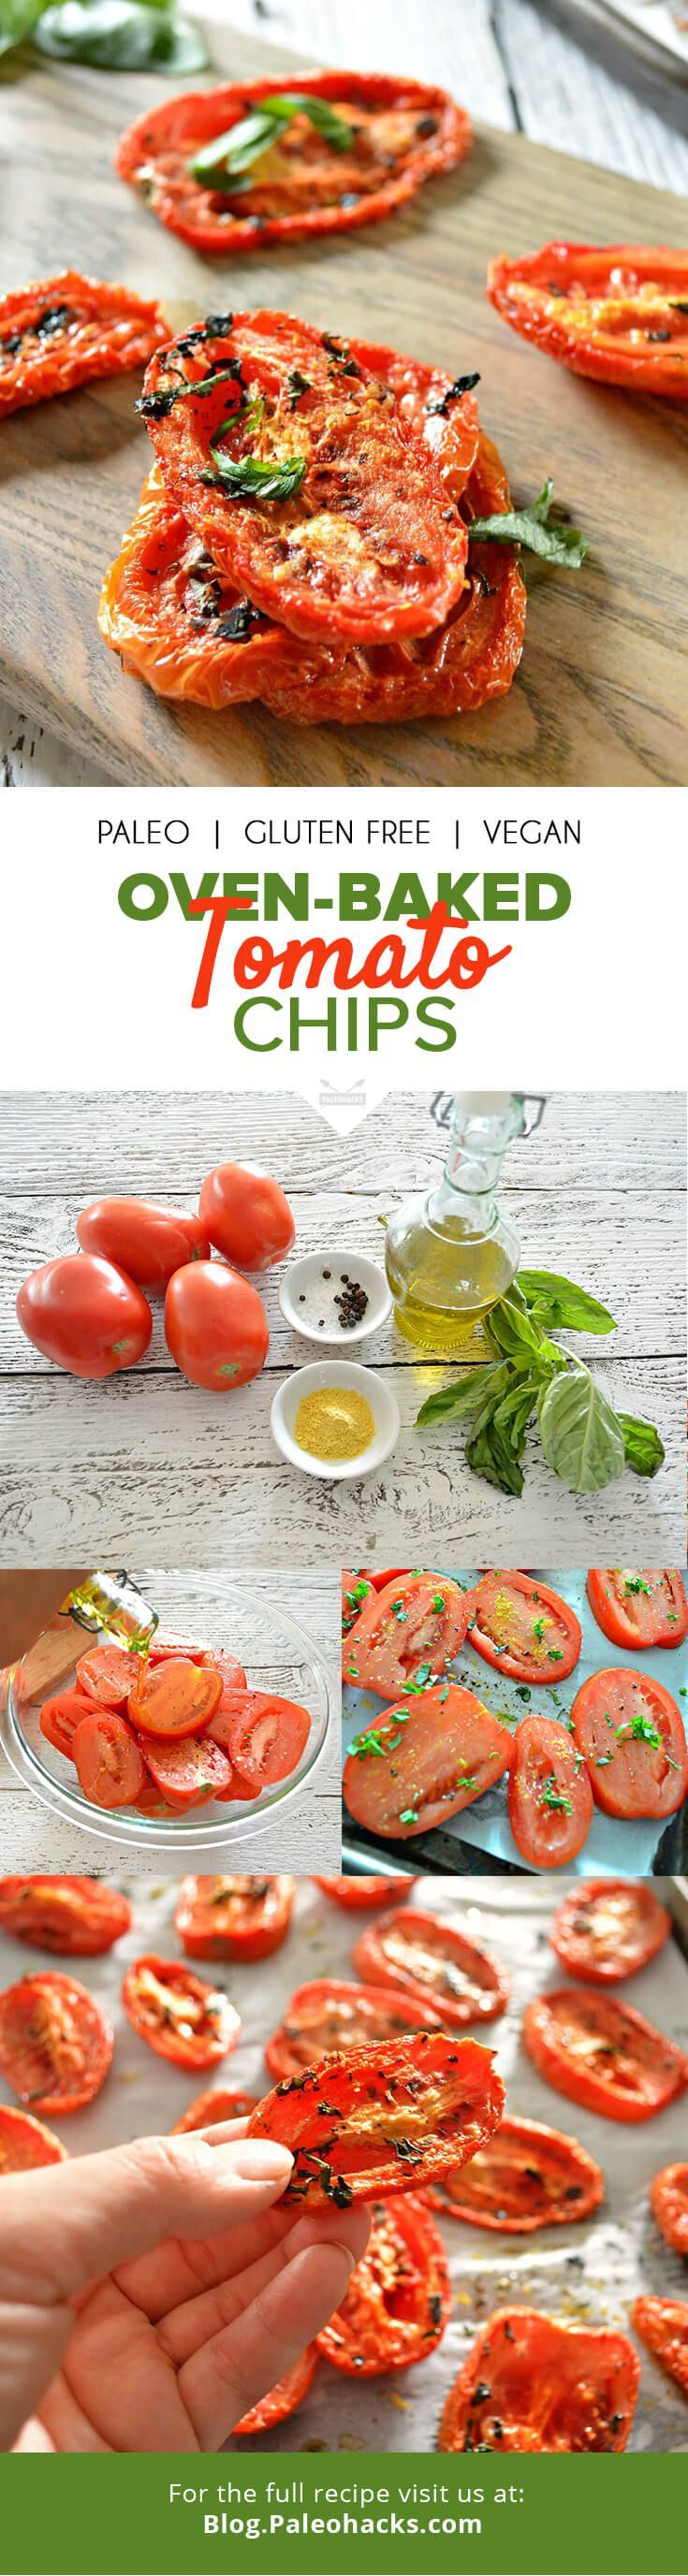 oven-baked tomato chips